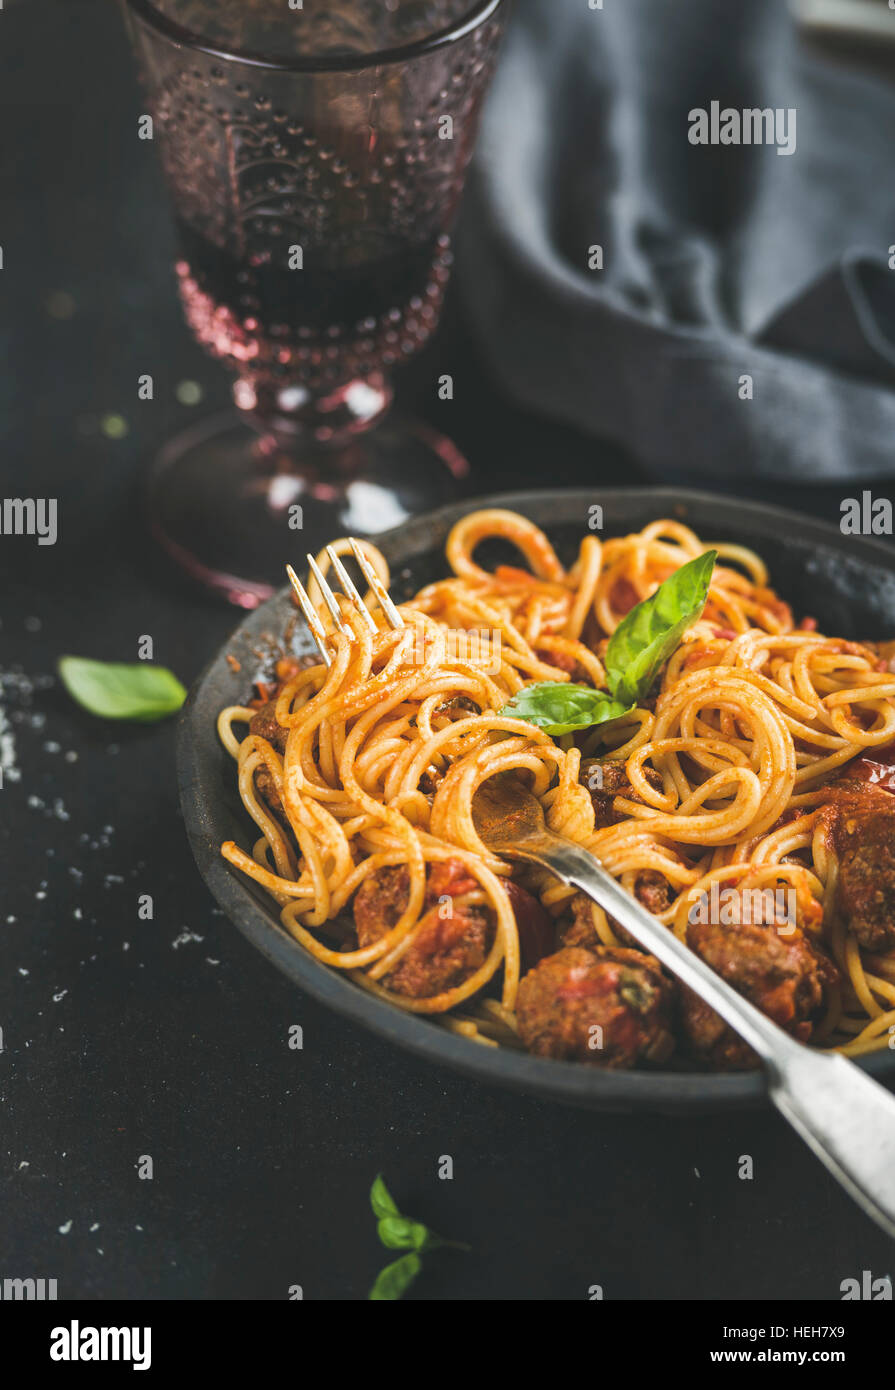 Italian pasta dinner. Spaghetti with meatballas, fresh basil leaves in dark plate and red wine in vintage glass - Stock Image